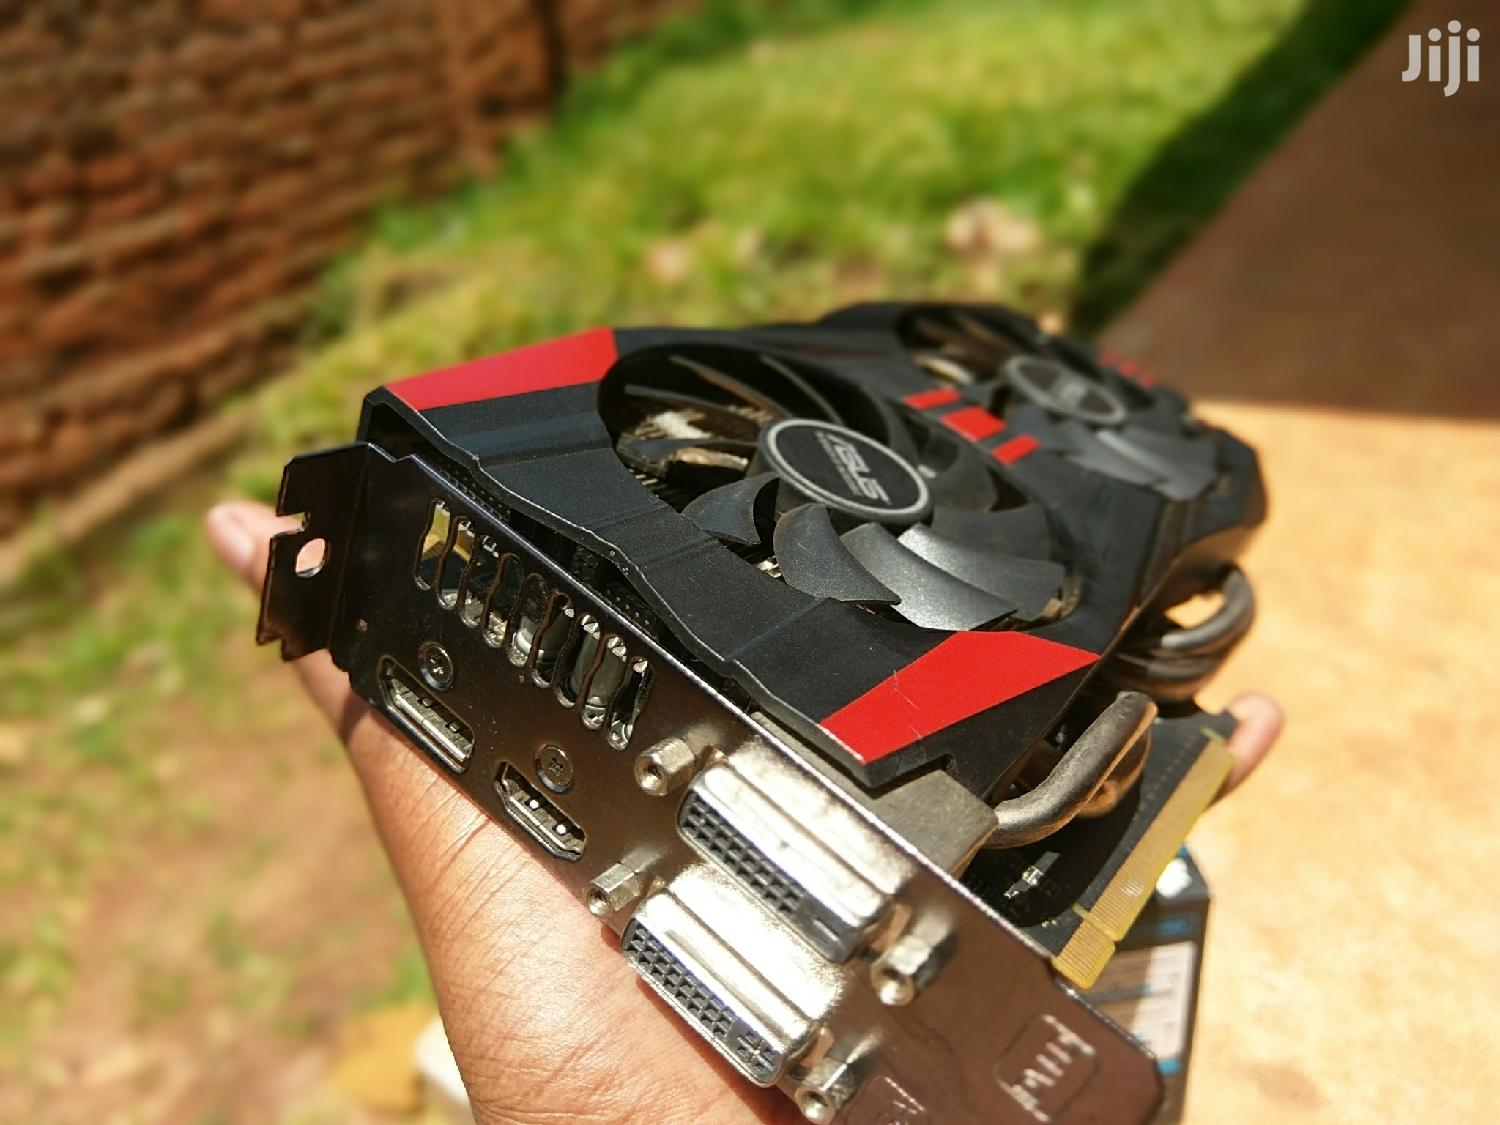 Archive: Asus Nvidia Geforce GTX 760 2GB GDDR5 Gaming Graphics Card